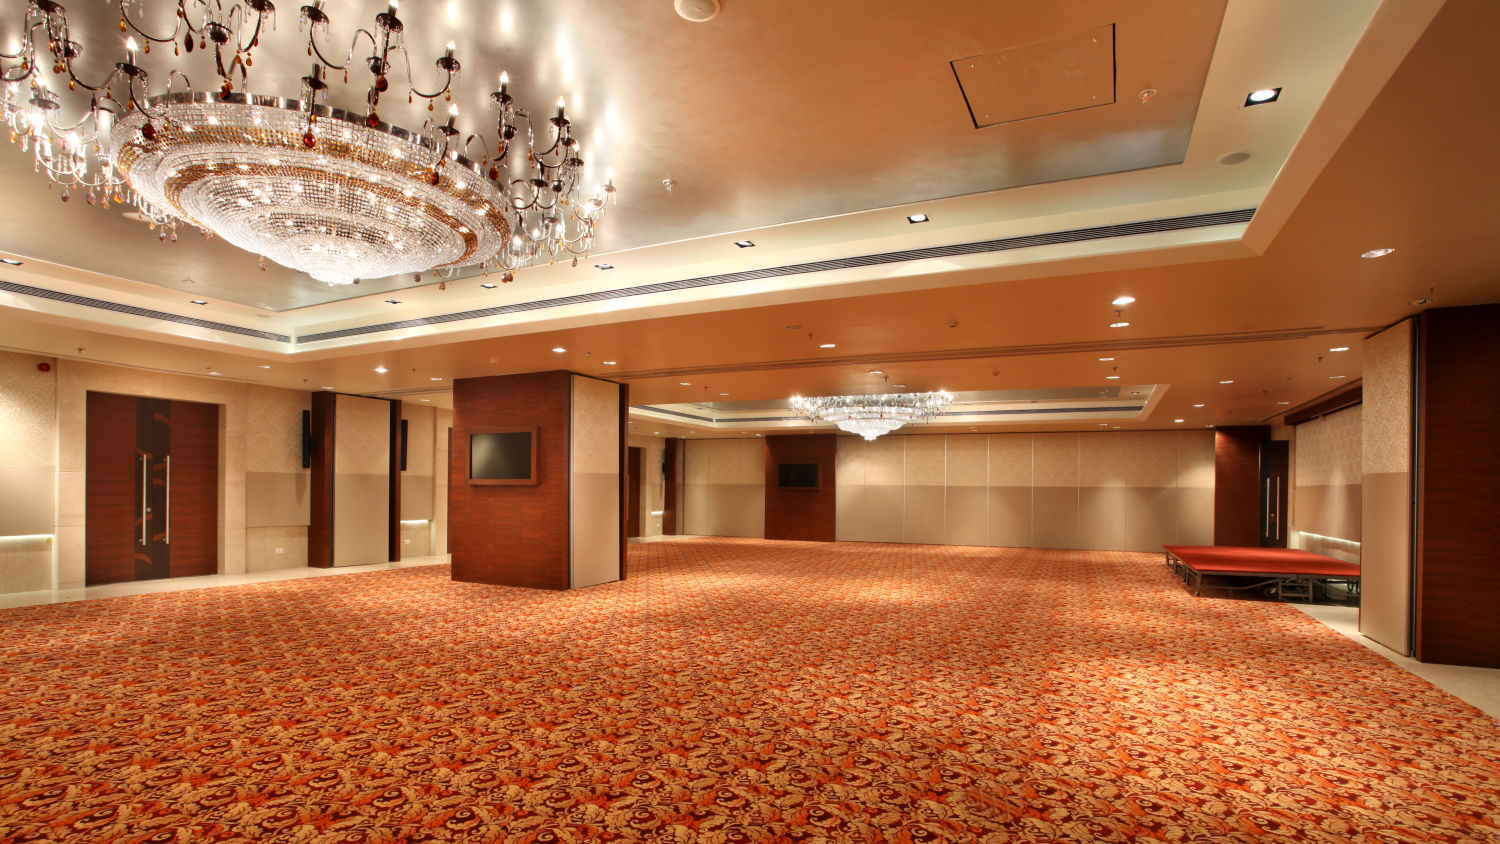 Banquet hall at Mahagun Sarovar Portico Vaishali, best hotels in vaishali 1